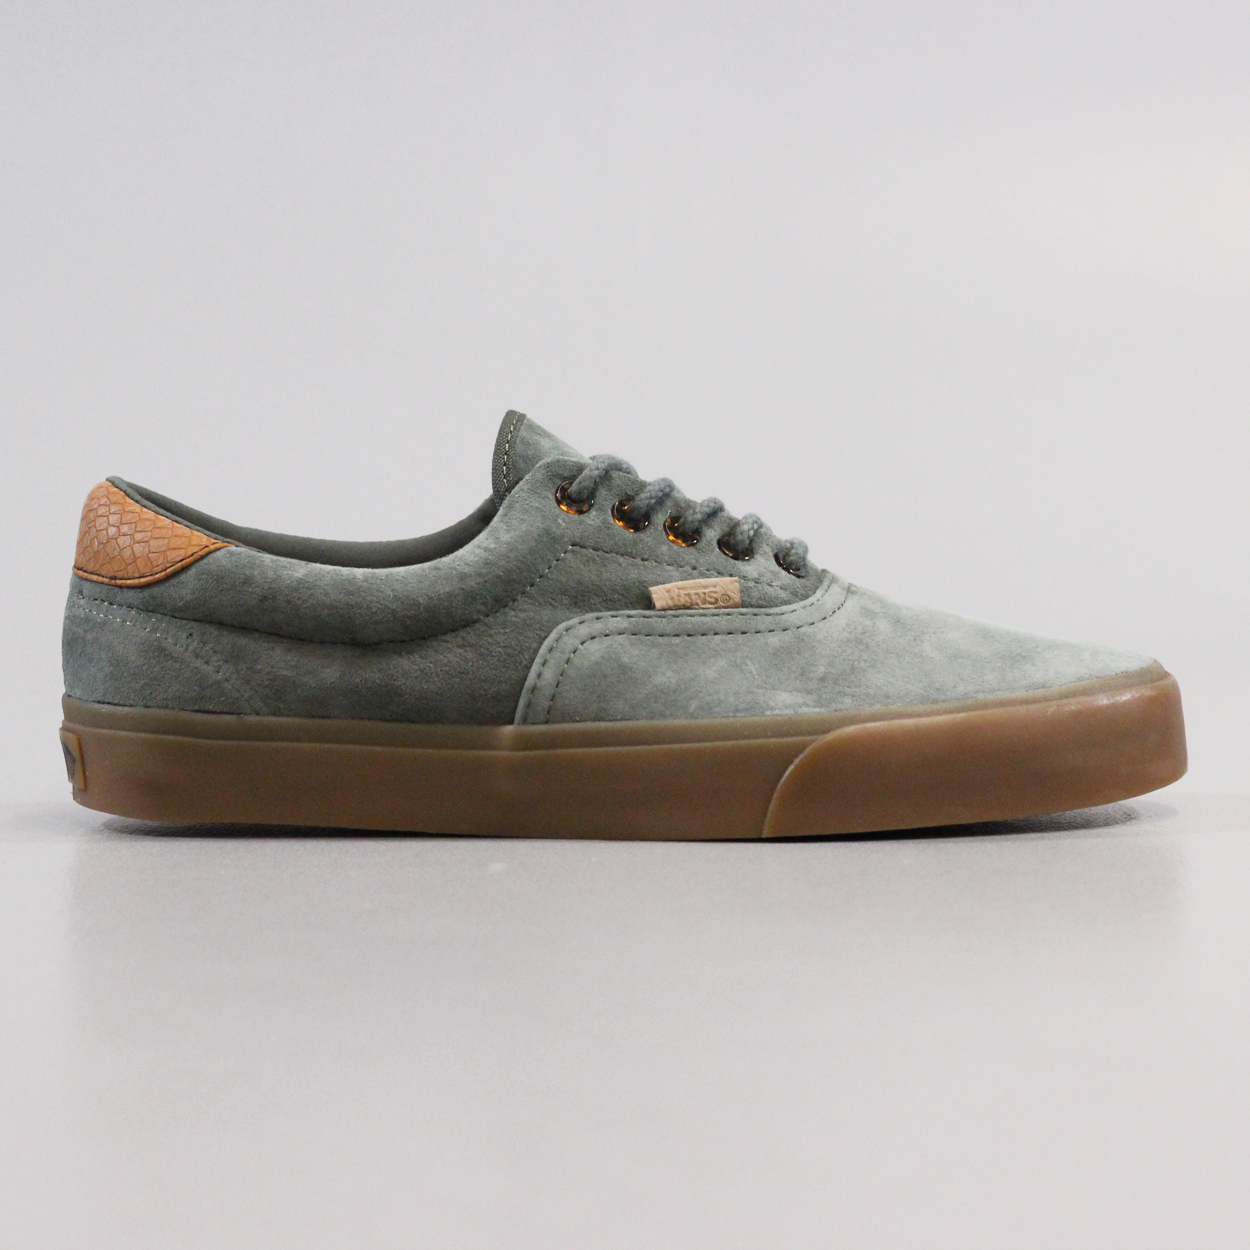 d3b5d2a0cb67 Vans Era 59 CA PS Mens Suede Skateboarding Shoes Beetle Green £42.00